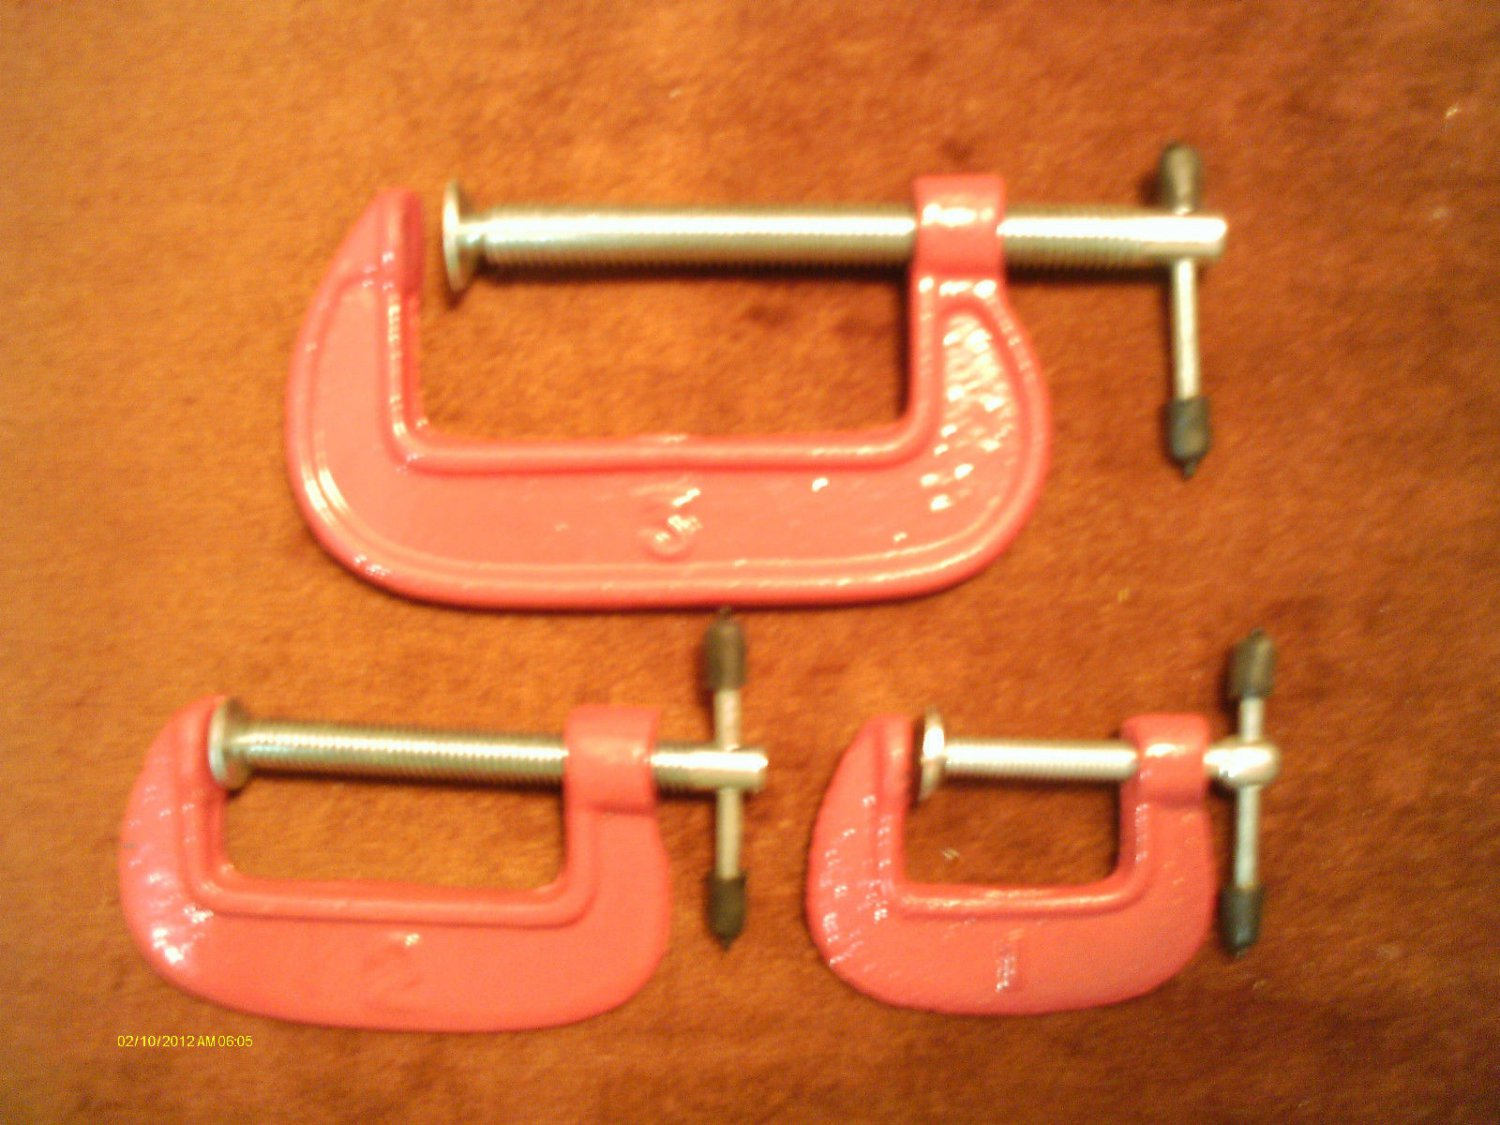 3 pc HOBBY C CLAMP SET 1, 2, & 3 INCH SLIDING T-HANDLES FREE SHIPPING in USA NEW